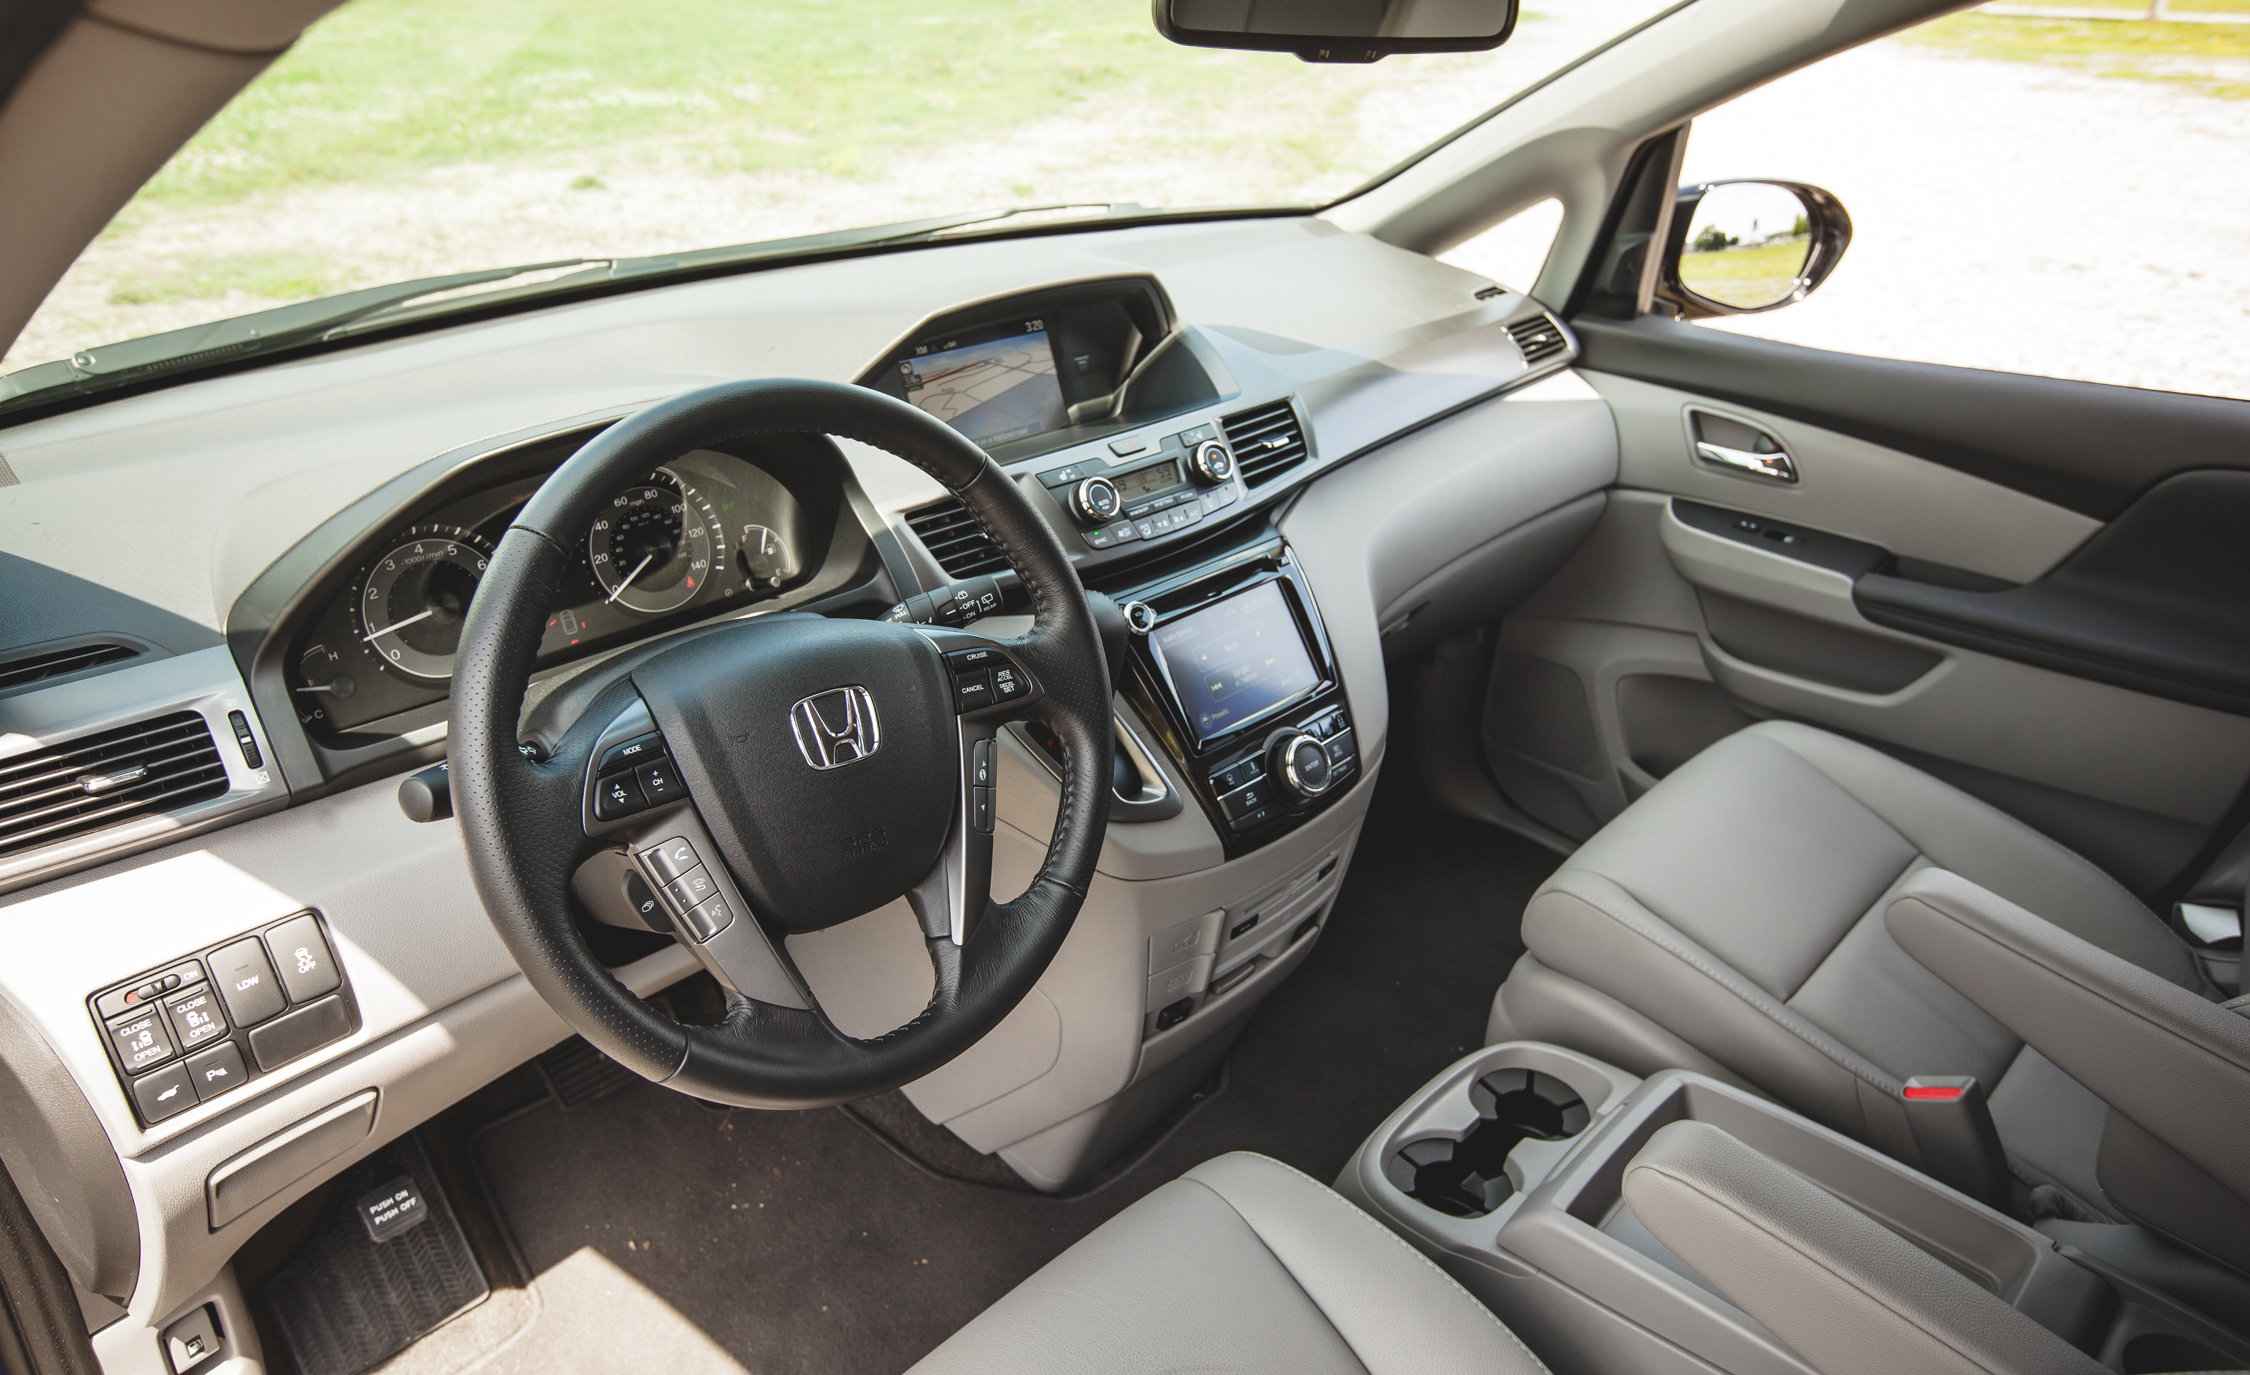 2014 Honda Odyssey Touring Elite Interior (View 5 of 19)